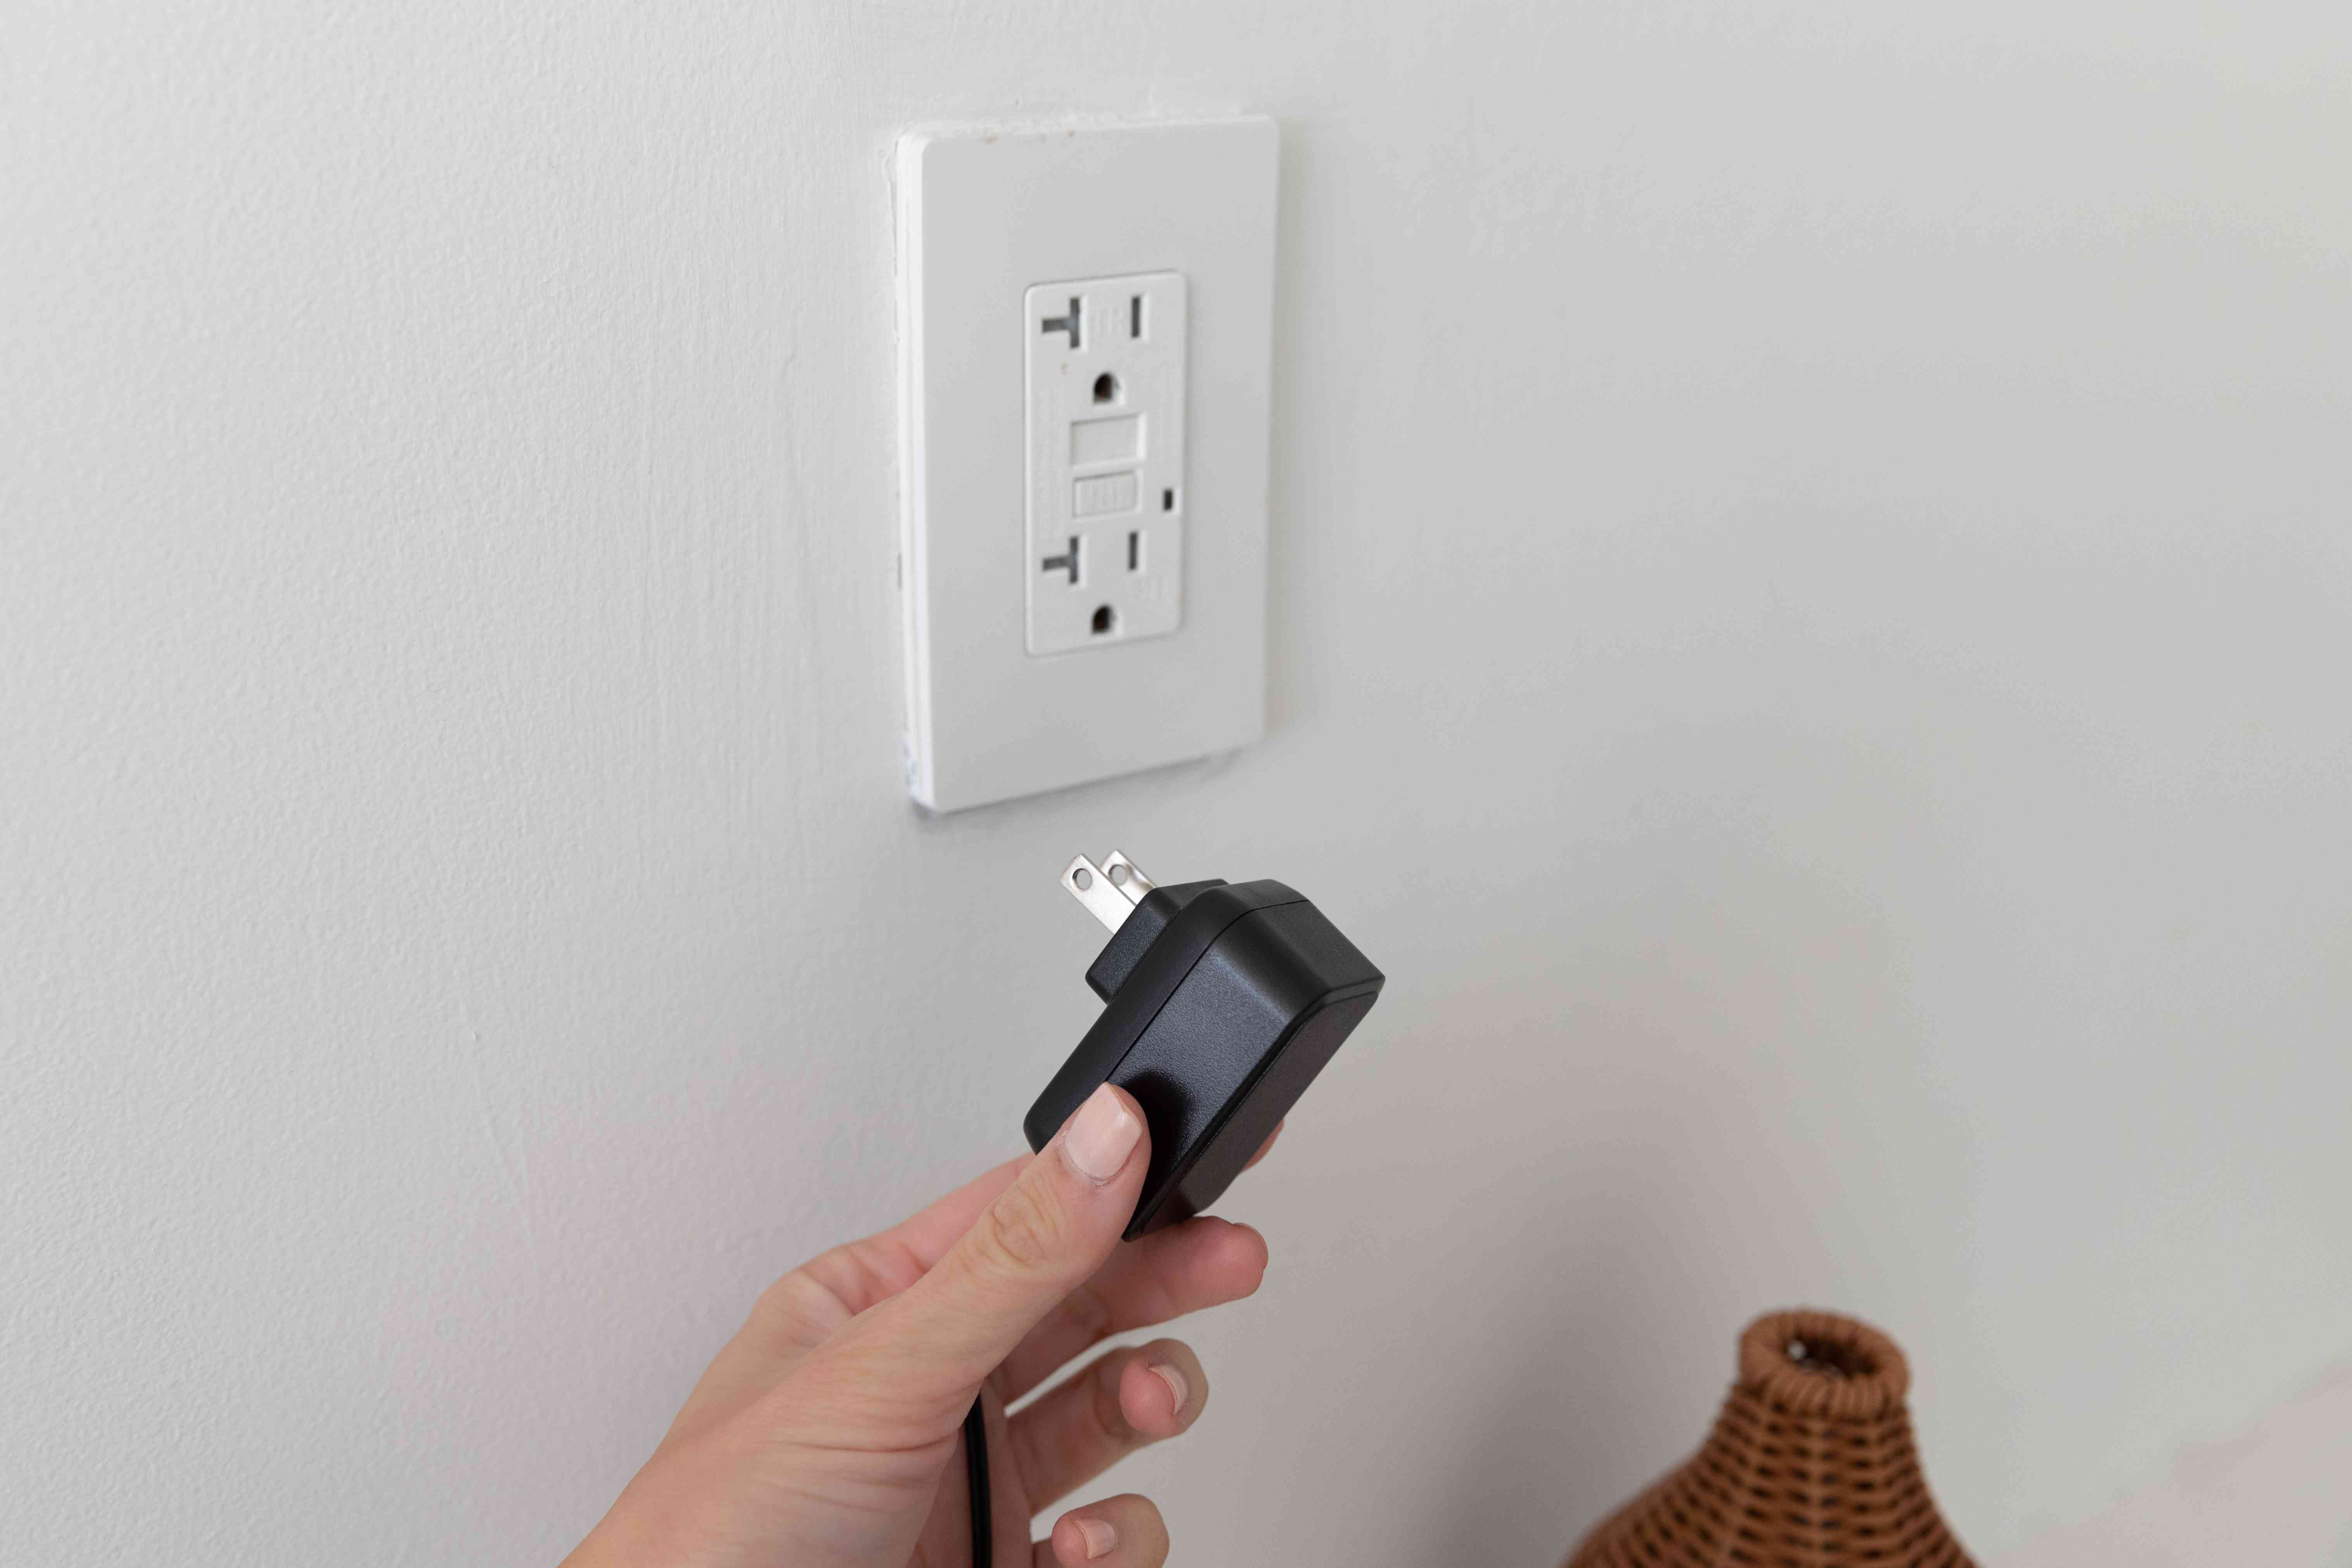 Oil diffuser unplugged from wall outlet